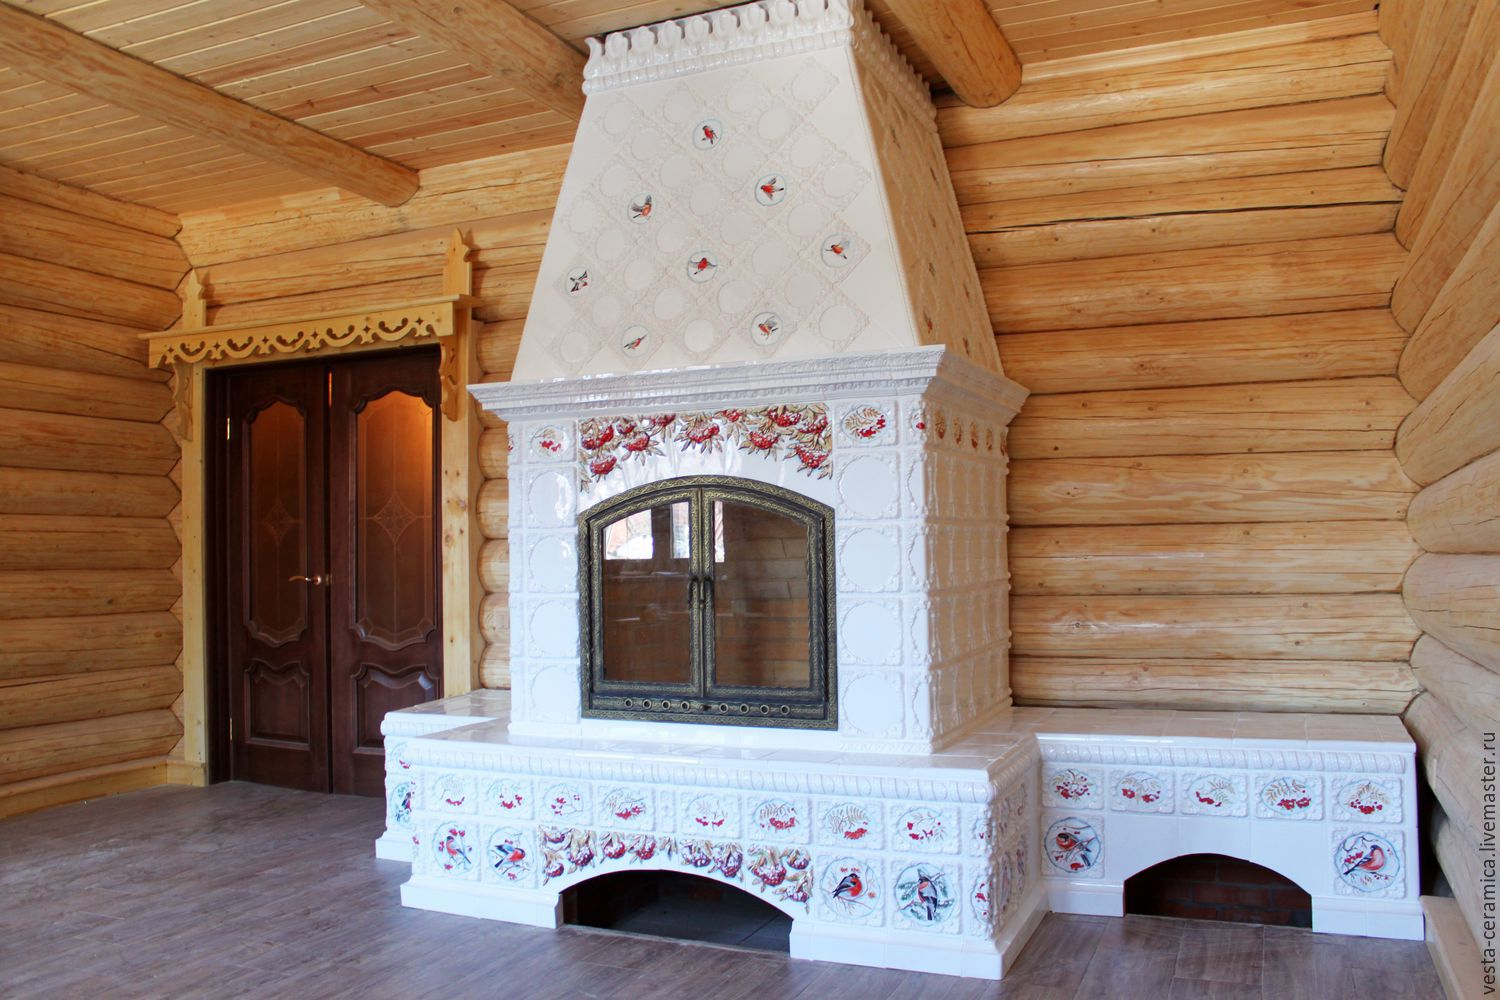 Fireplace 'Rowan red', Fireplaces, Moscow,  Фото №1